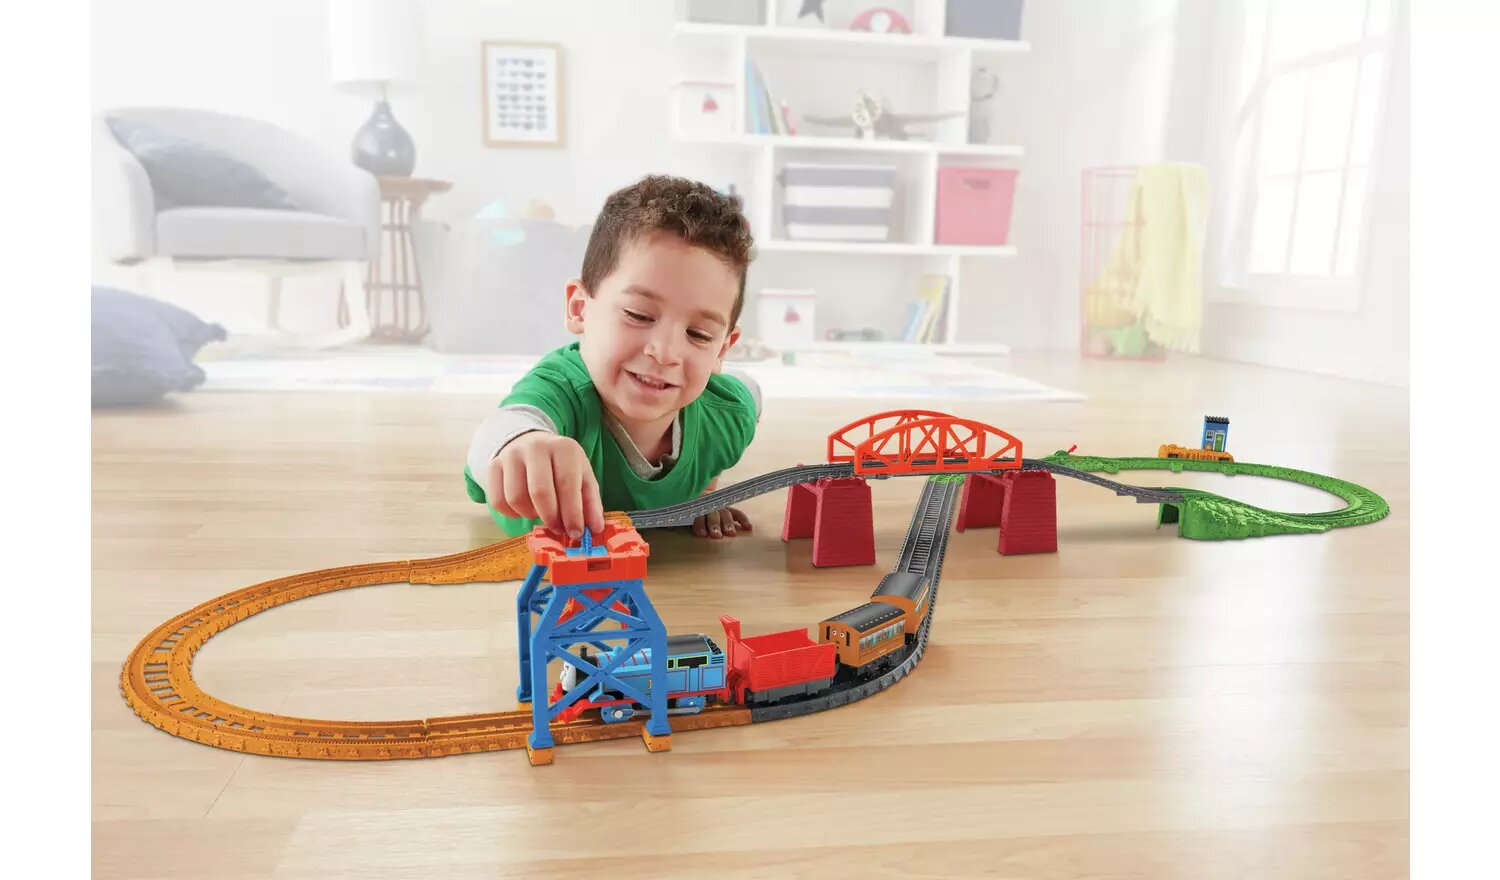 Thomas & Friends 3-in-1 Playset.